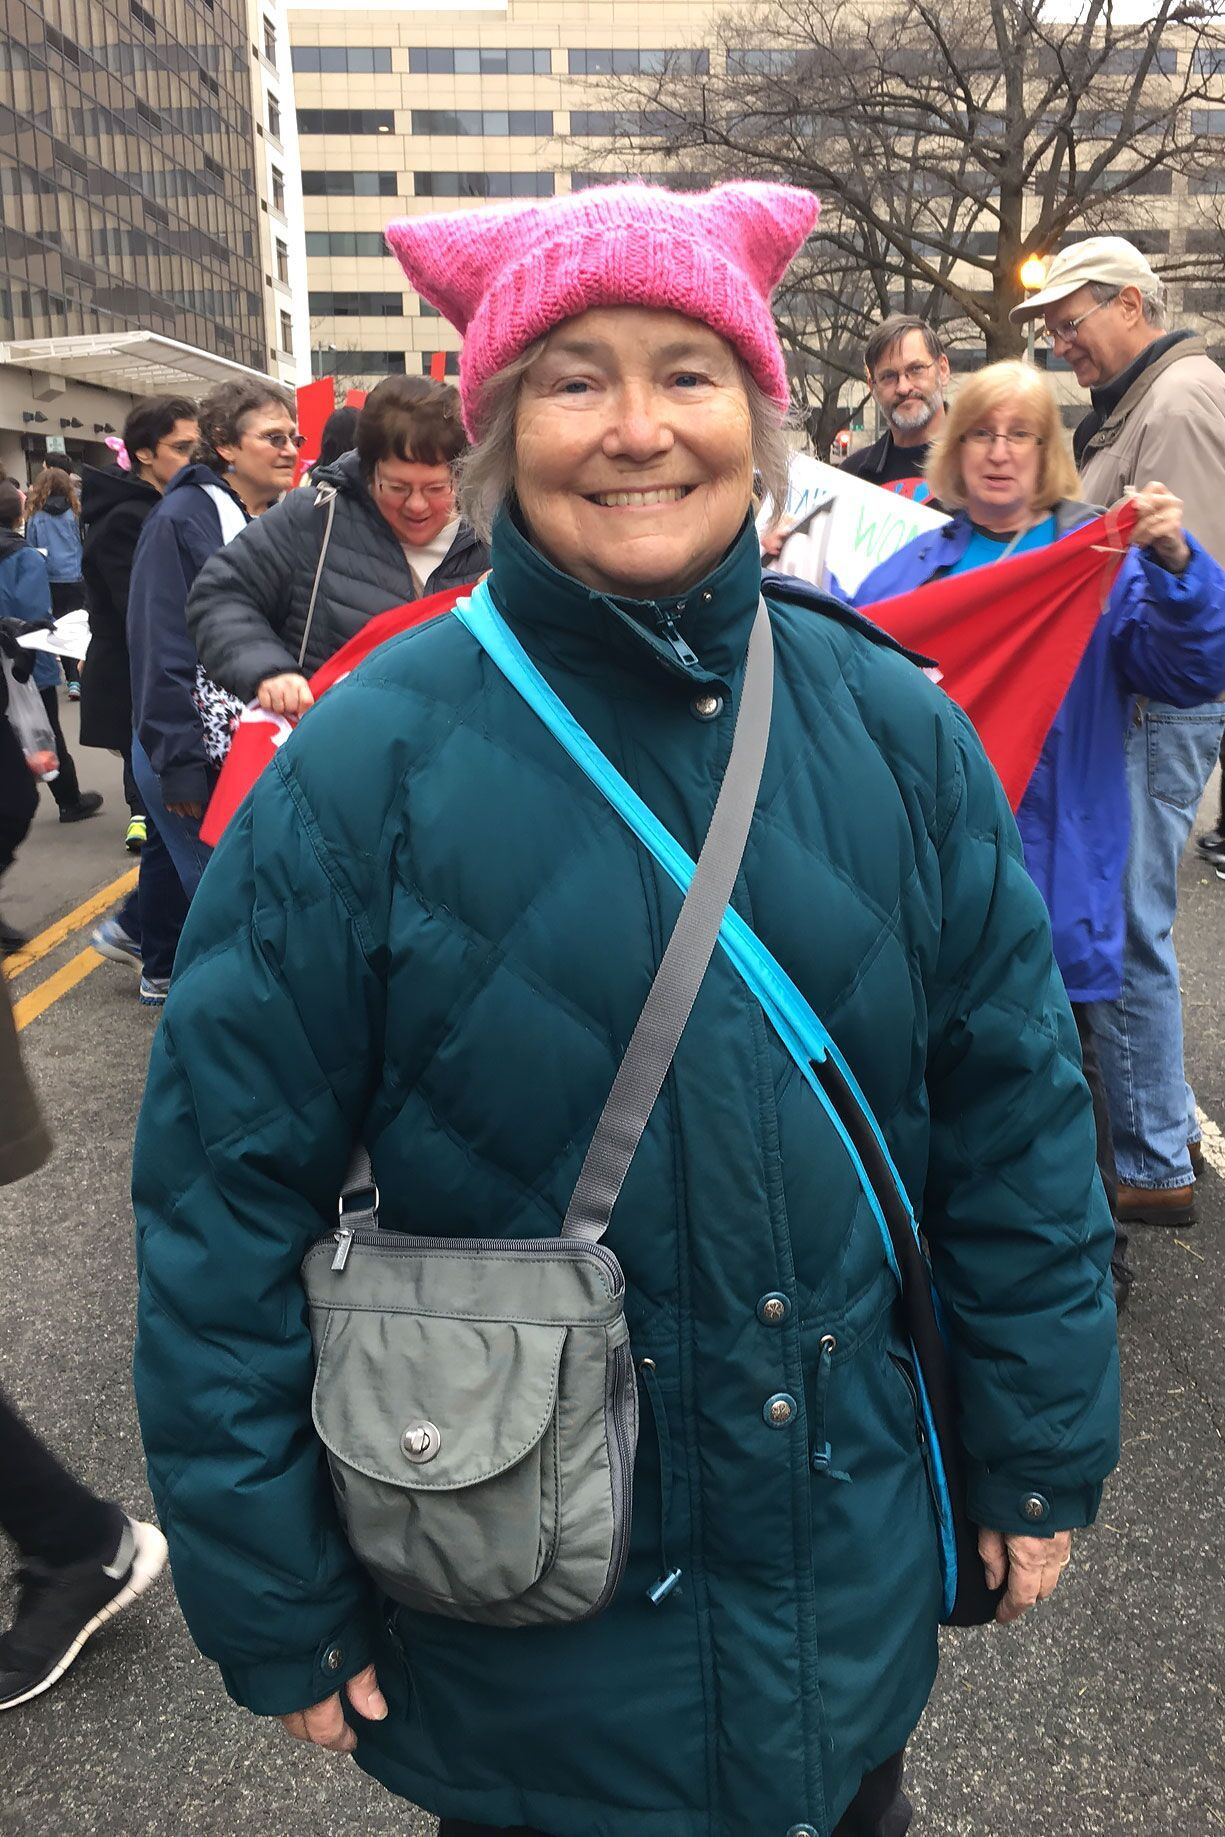 13 Women Who've Been Fighting For Women's Rights For Decades on Why They're Still Marching